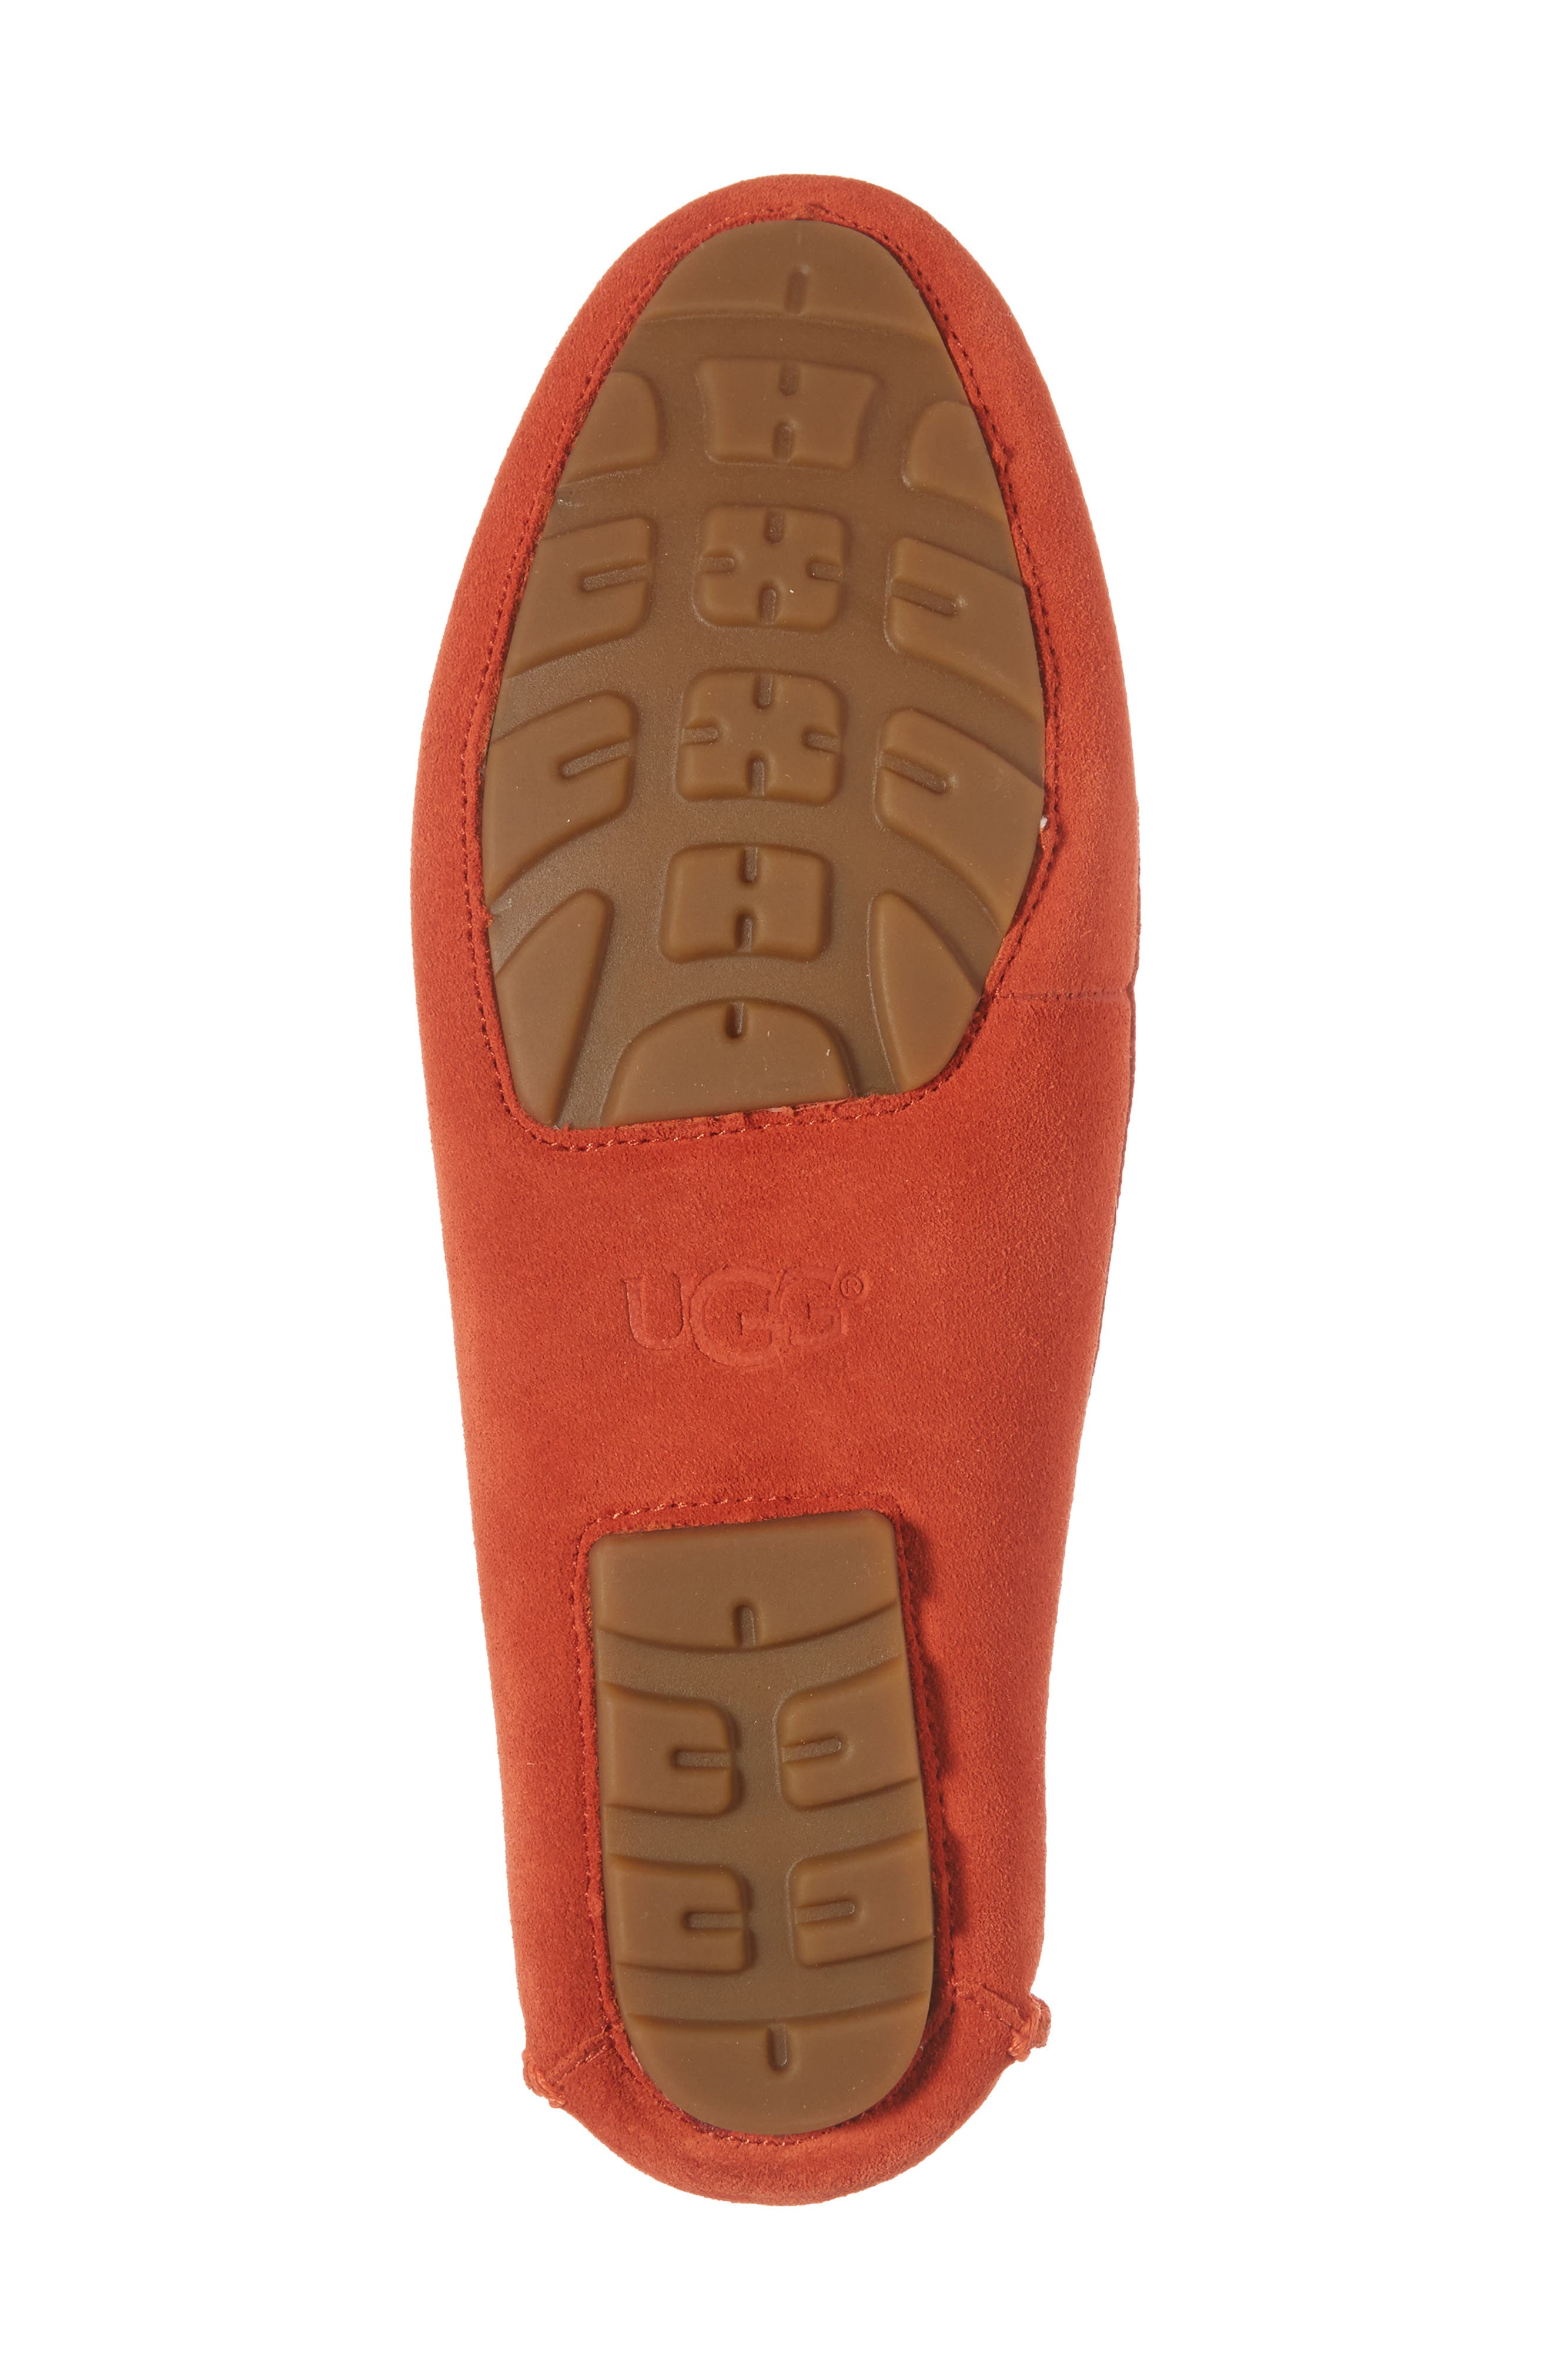 Clair Flat,                             Alternate thumbnail 6, color,                             Red Orange Suede